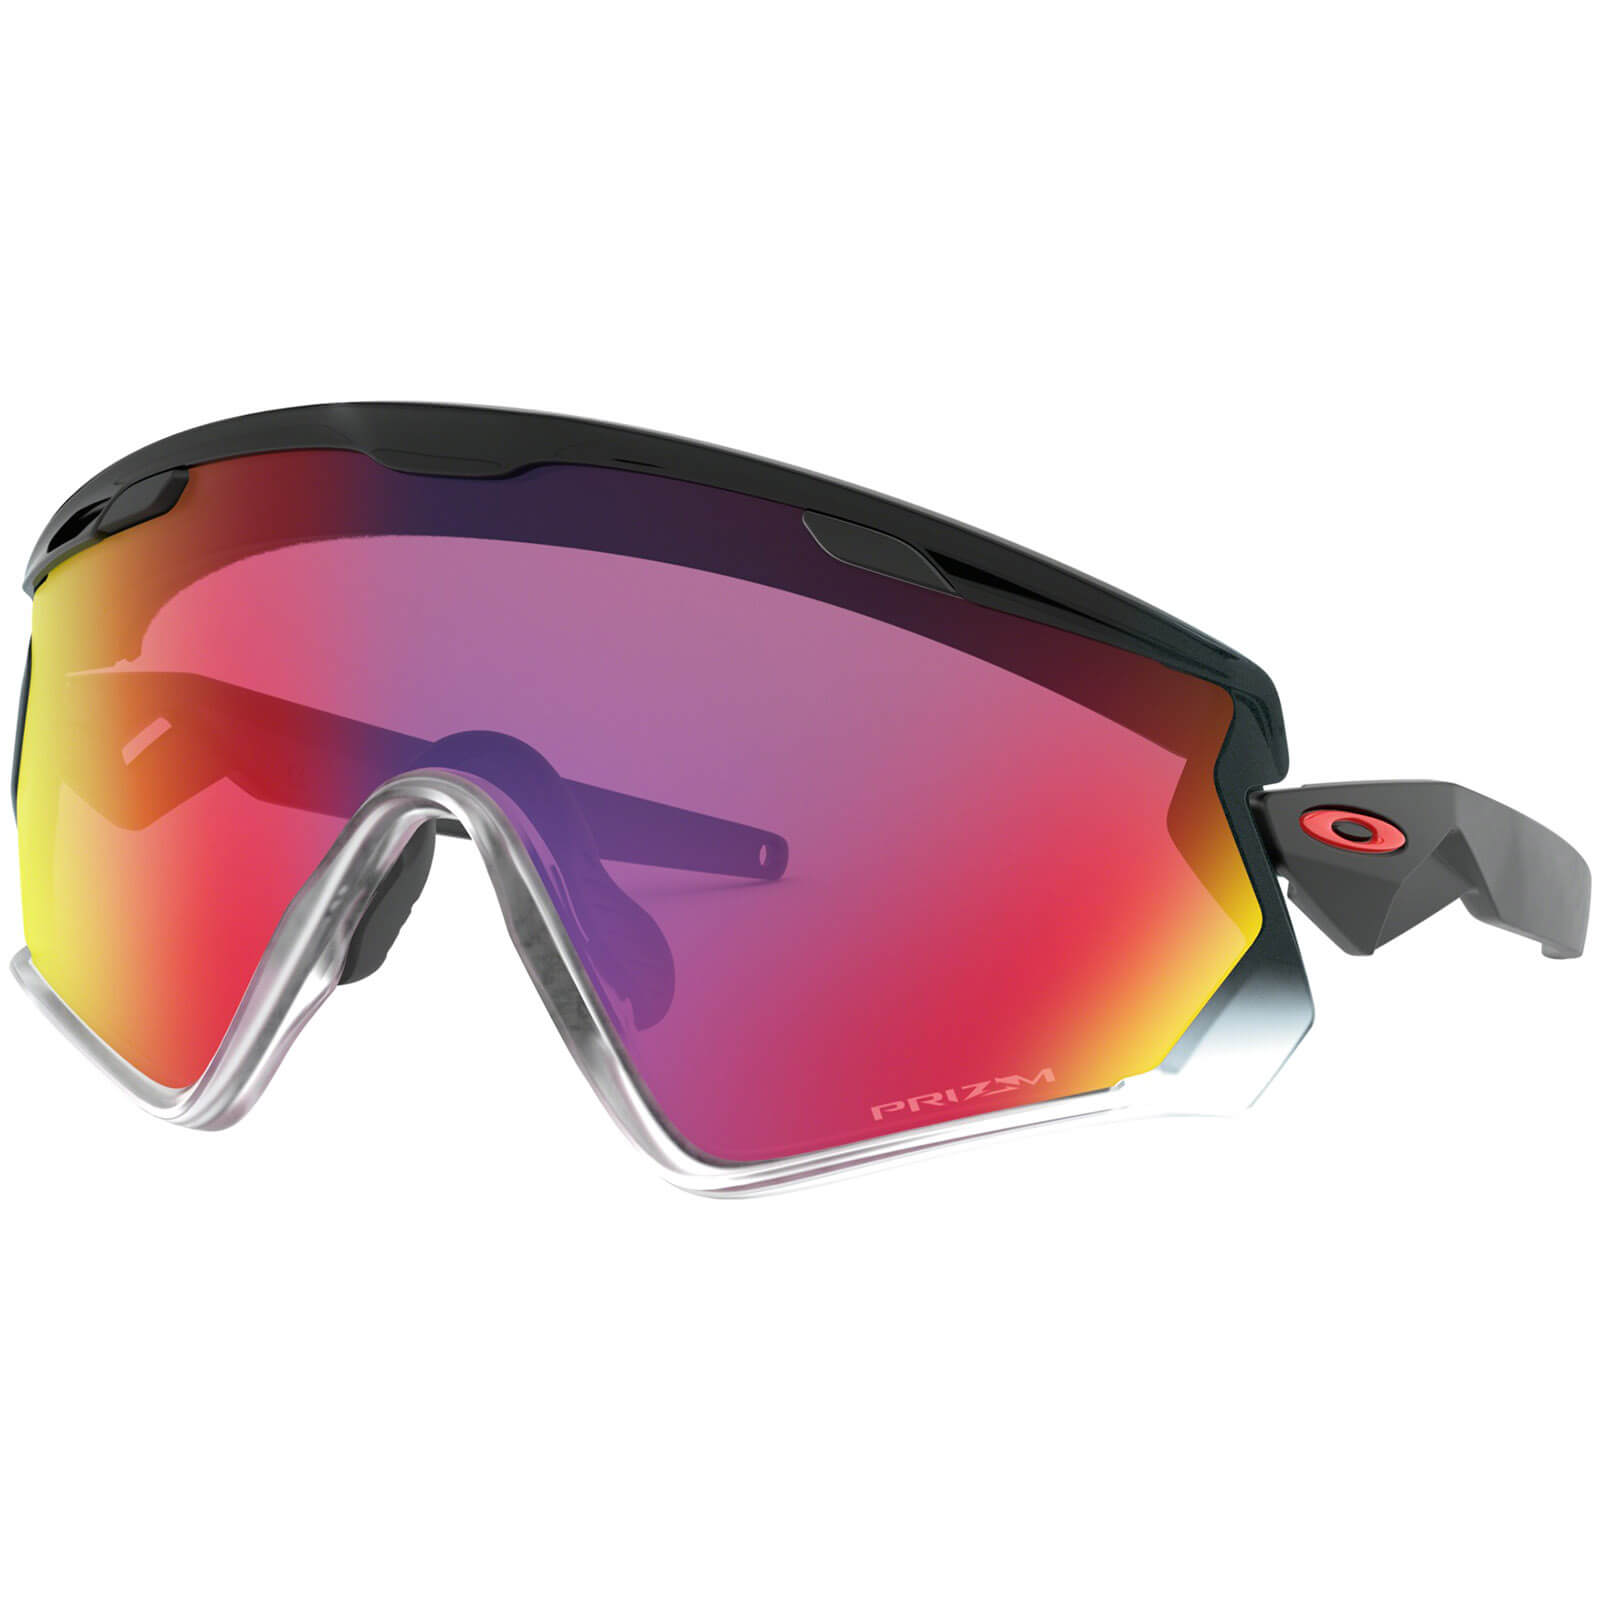 Oakley Wind Jacket 2.0 Sunglasses - Black Fade/Prizm Road